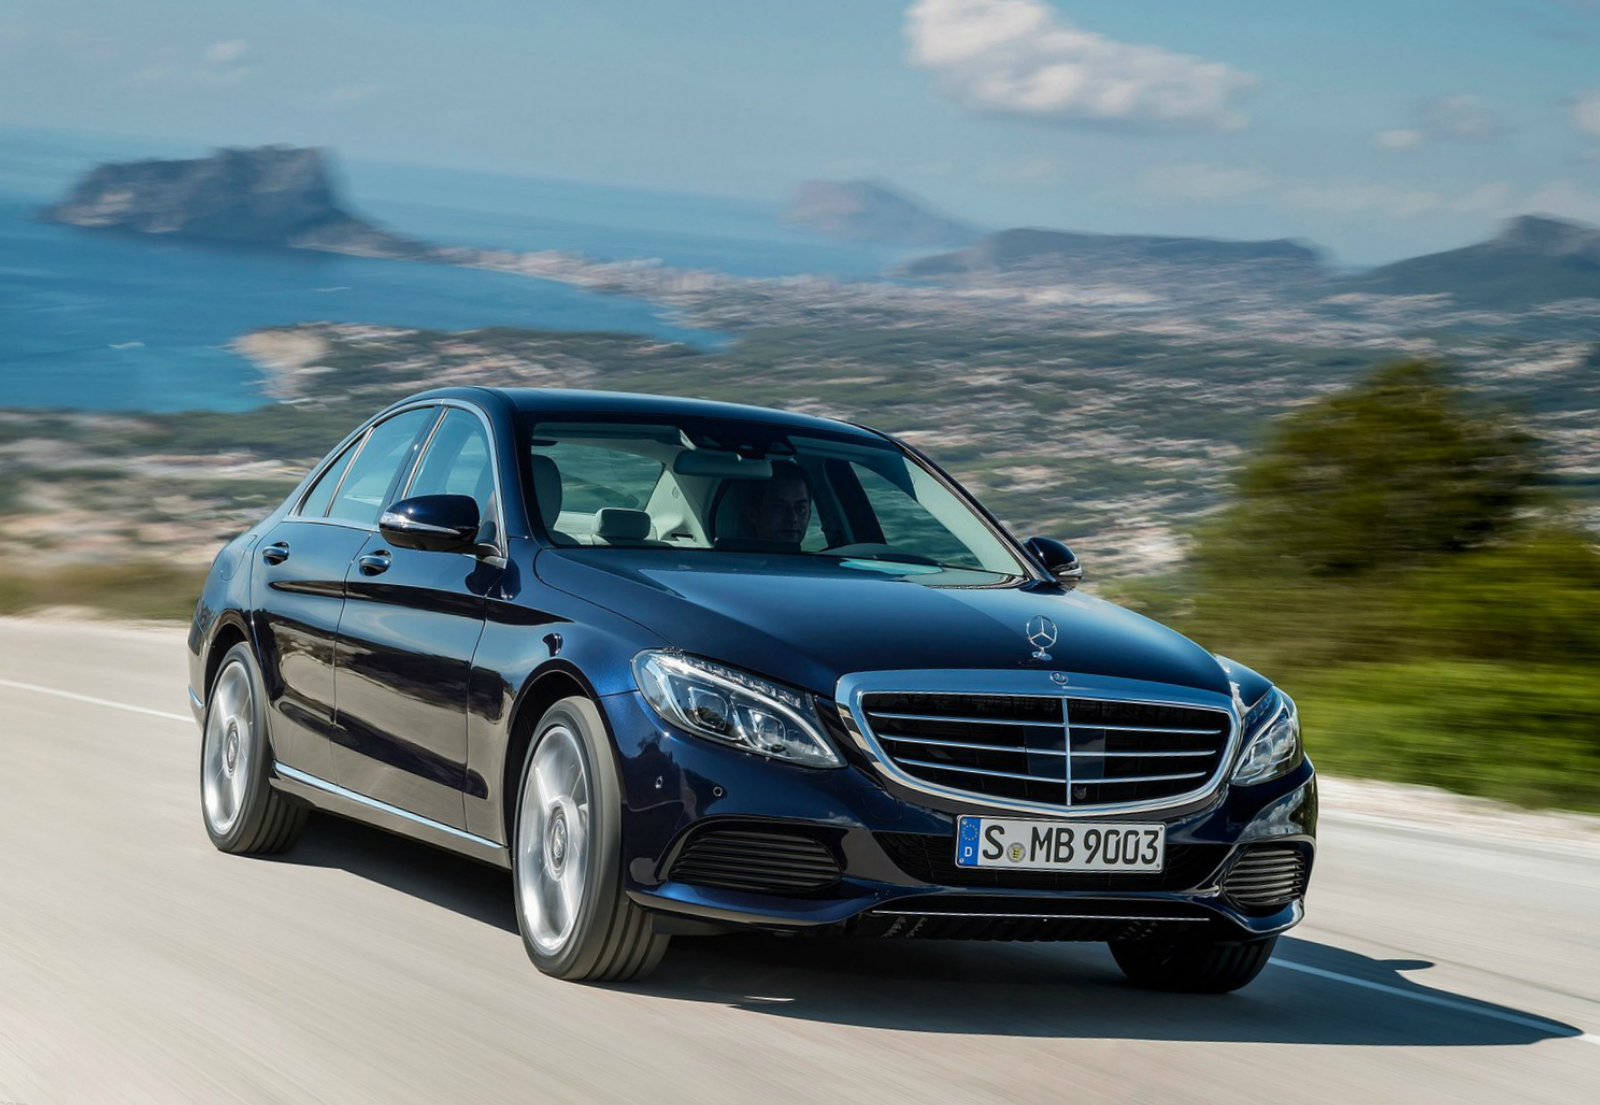 Mercedes benz c class 2015 reviews mercedes benz c class for Mercedes benz class 2015